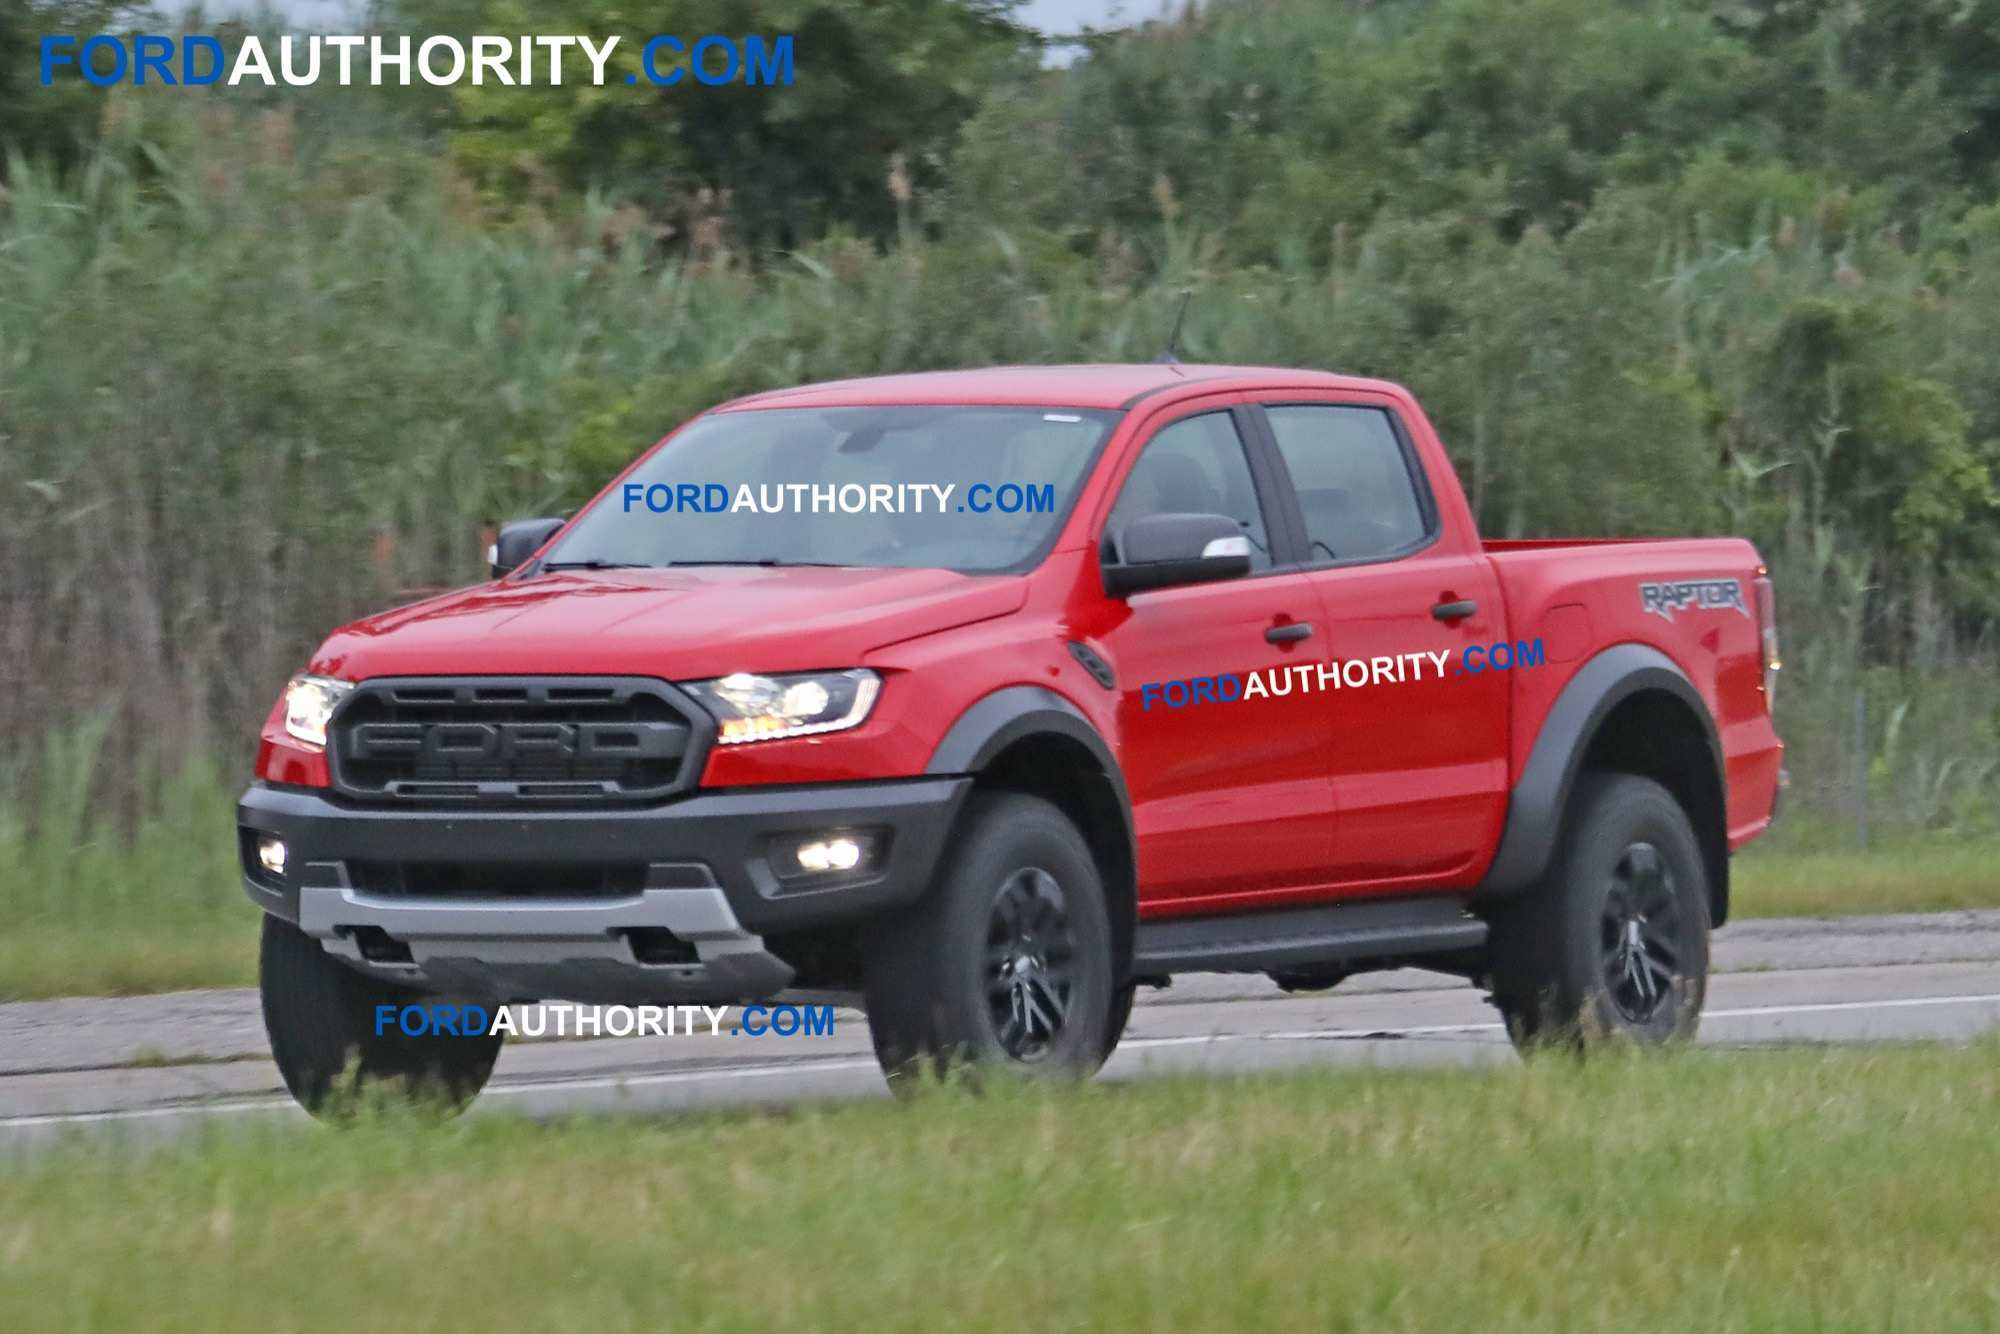 42 Gallery of Ford Ranger 2019 Specs Performance And New Engine Overview for Ford Ranger 2019 Specs Performance And New Engine